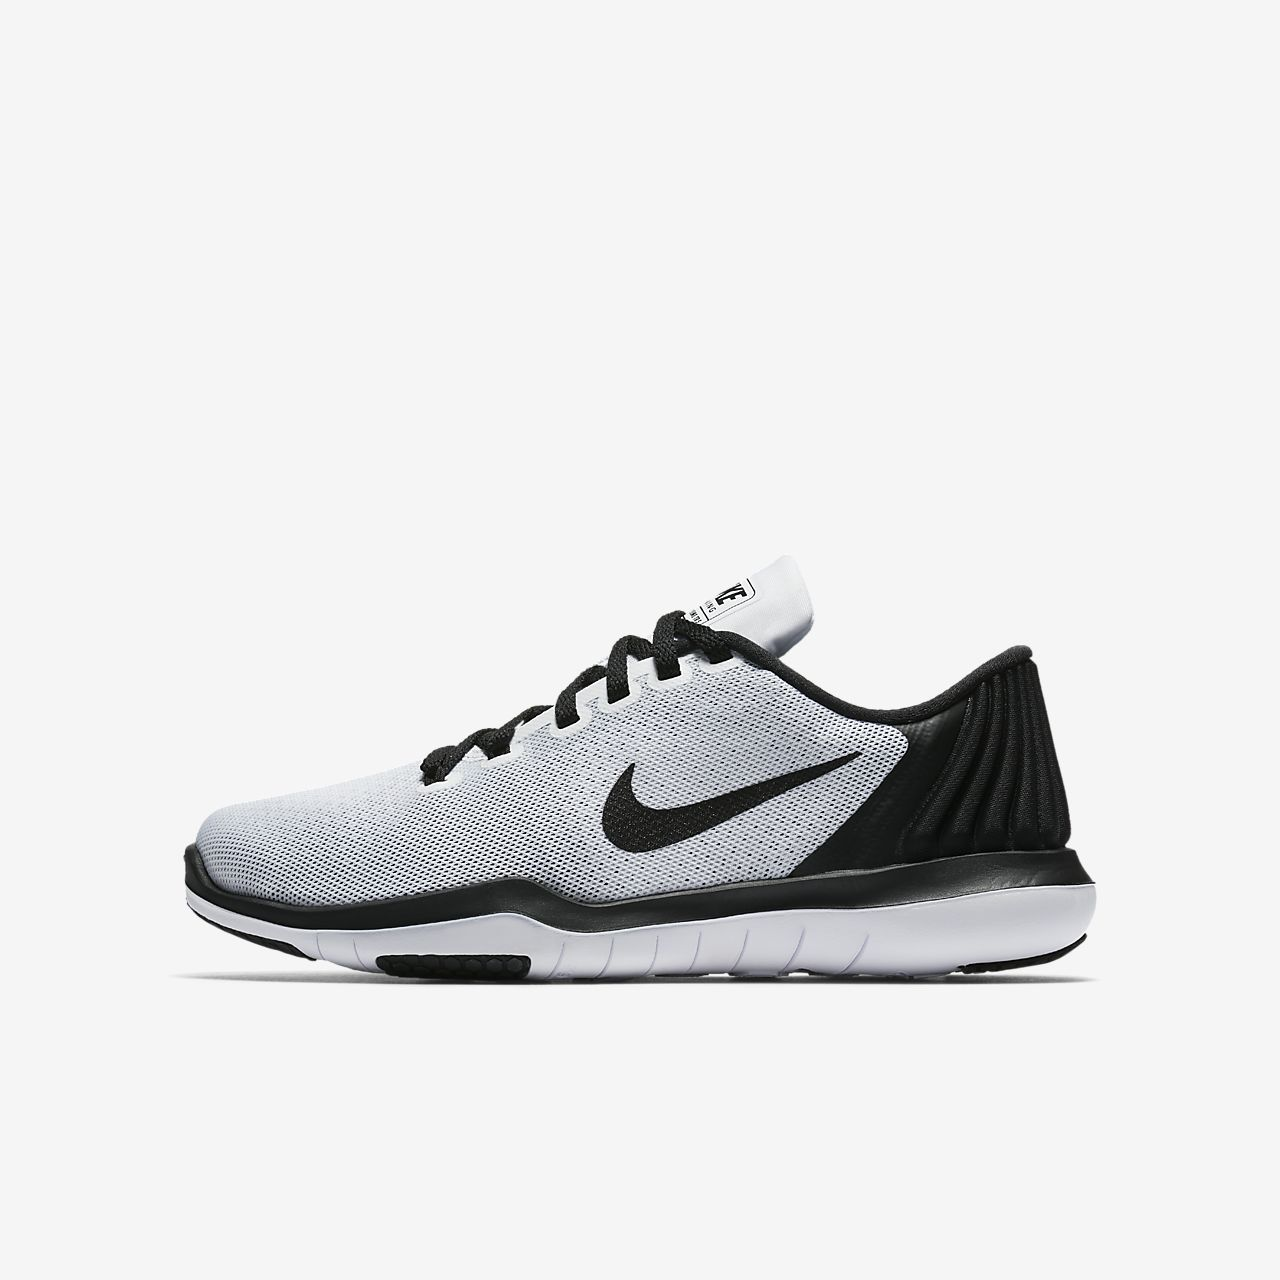 c36d7487864 nike free 3.0 size 6.5 kids Amazing first walking shoes ...